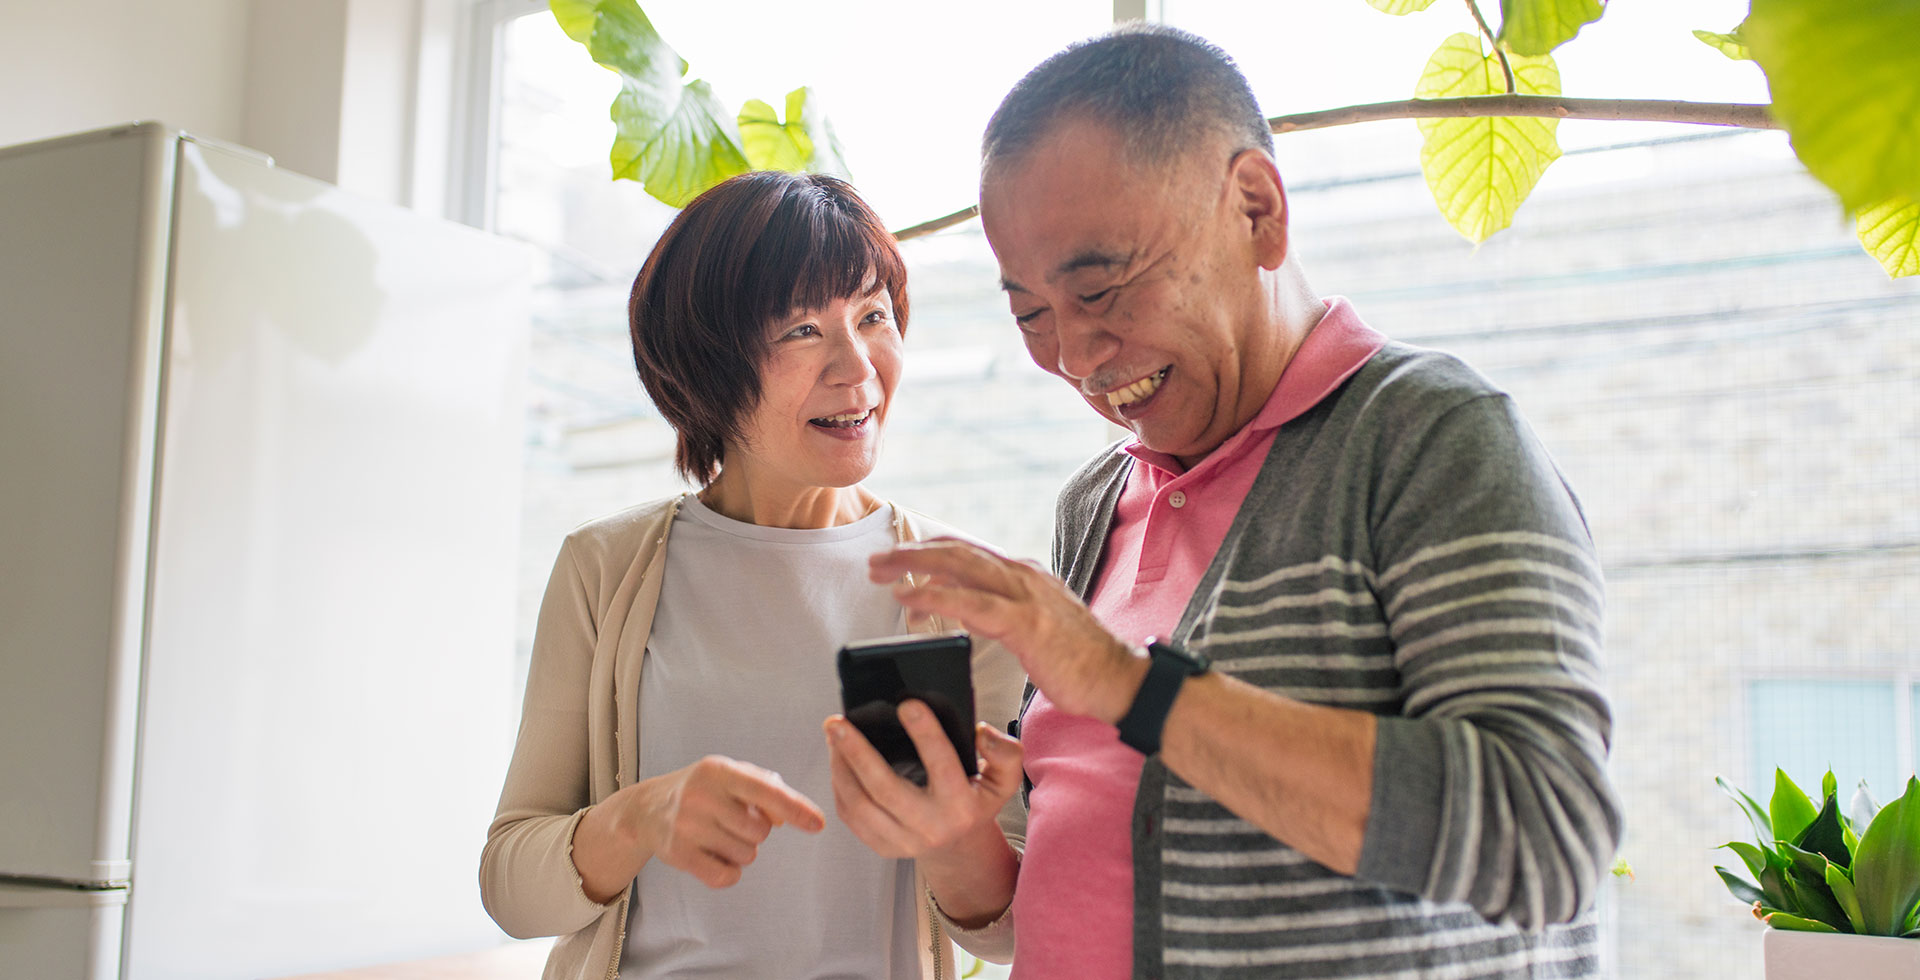 Couple using a Smarthphone